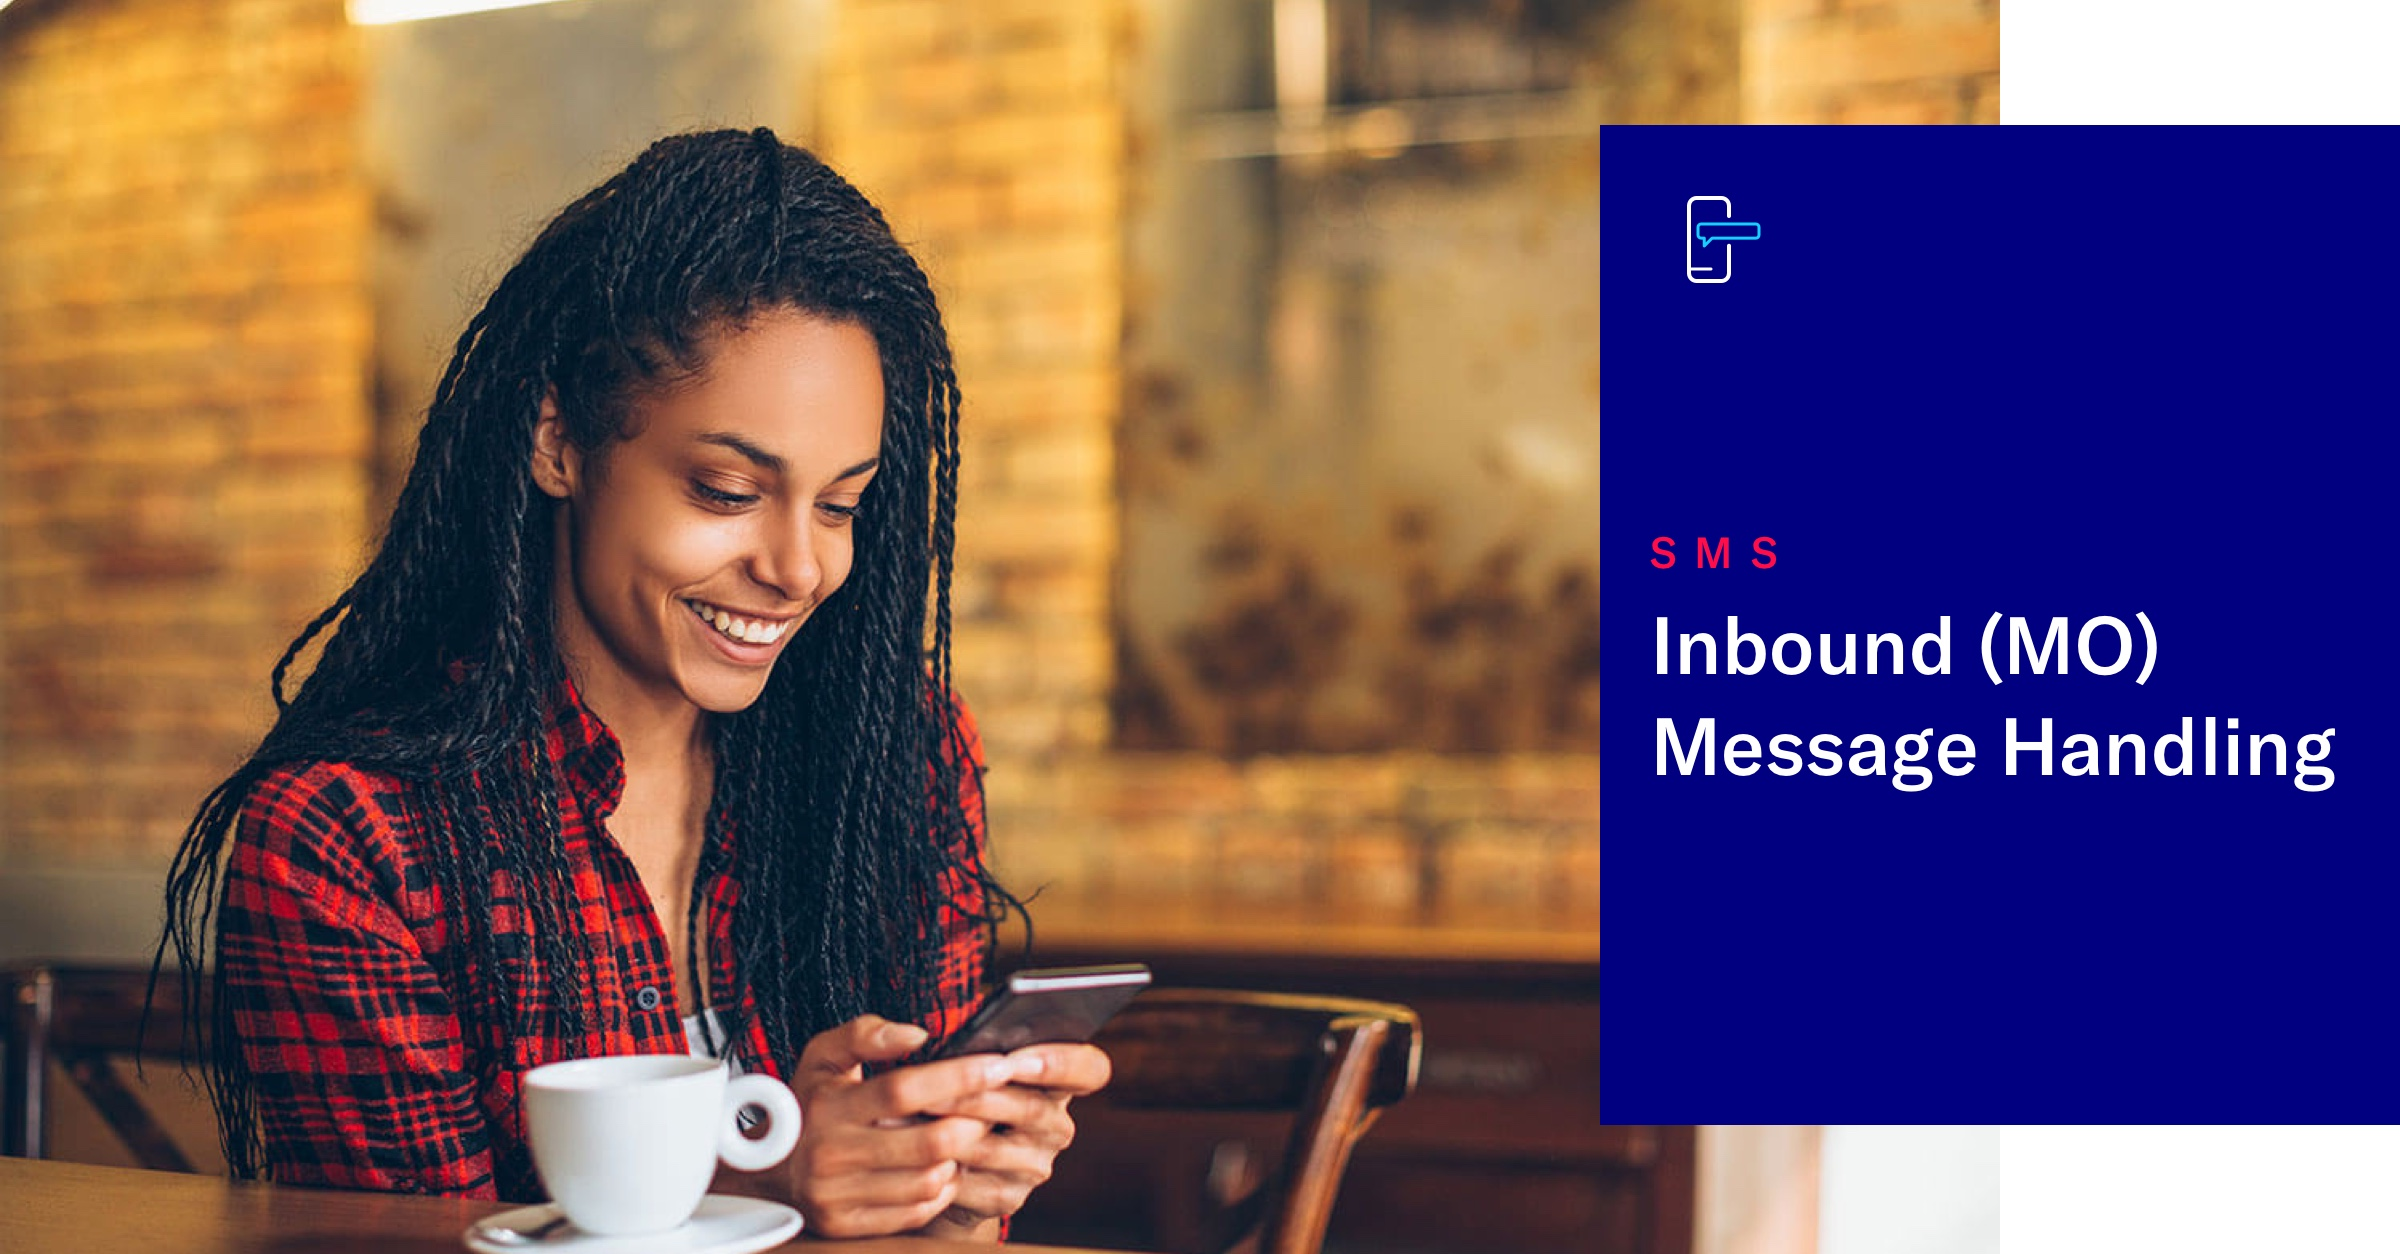 Inbound (MO) Message Handling and Other SMS Enhancements